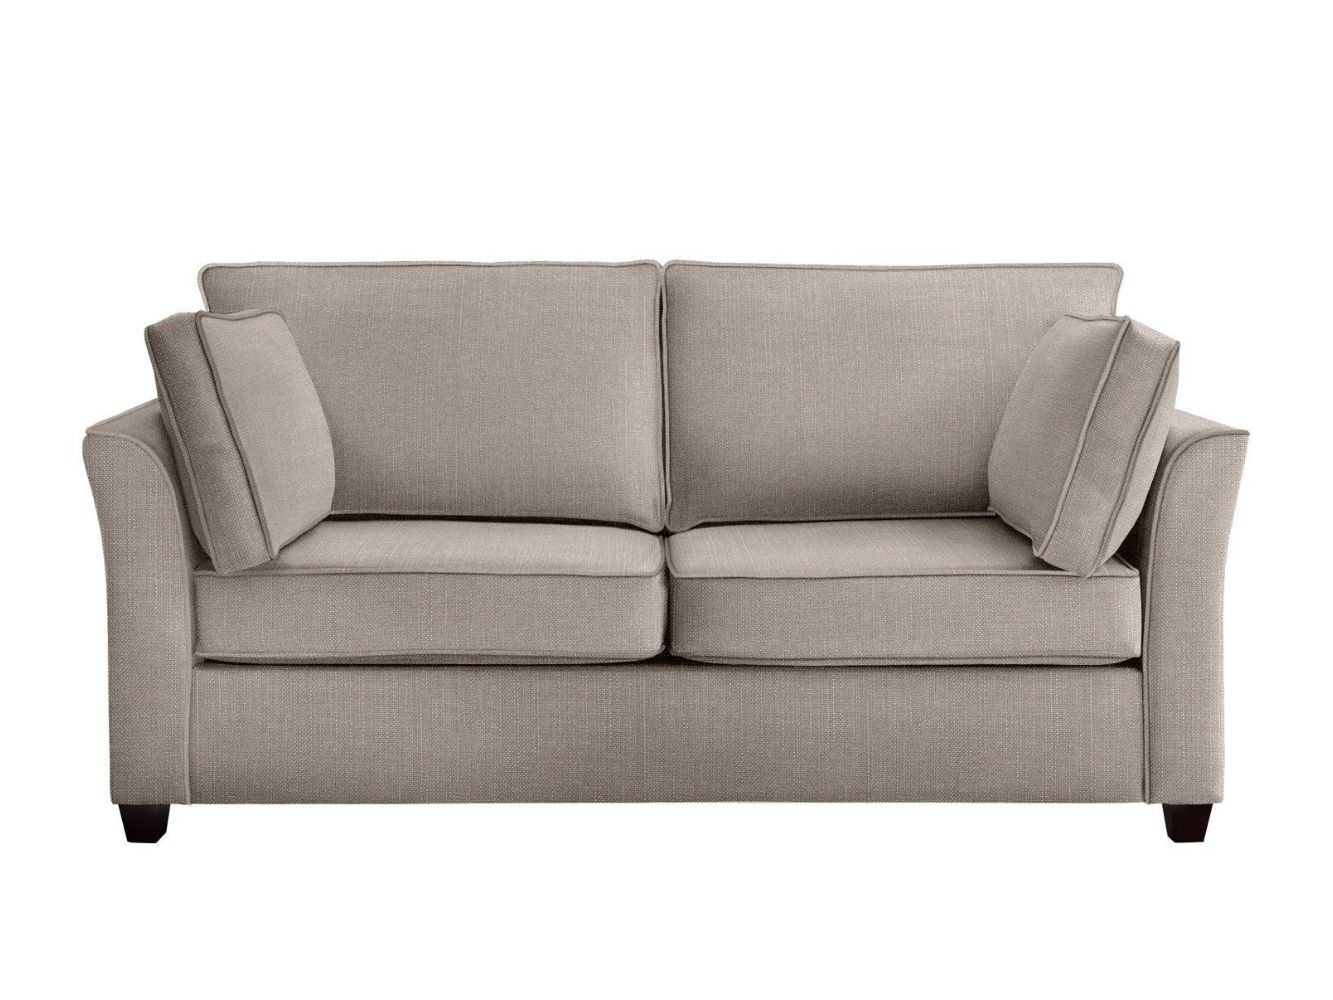 This is how I look in Stain Resistant Linen Cotton Dove with reflex foam seat cushions